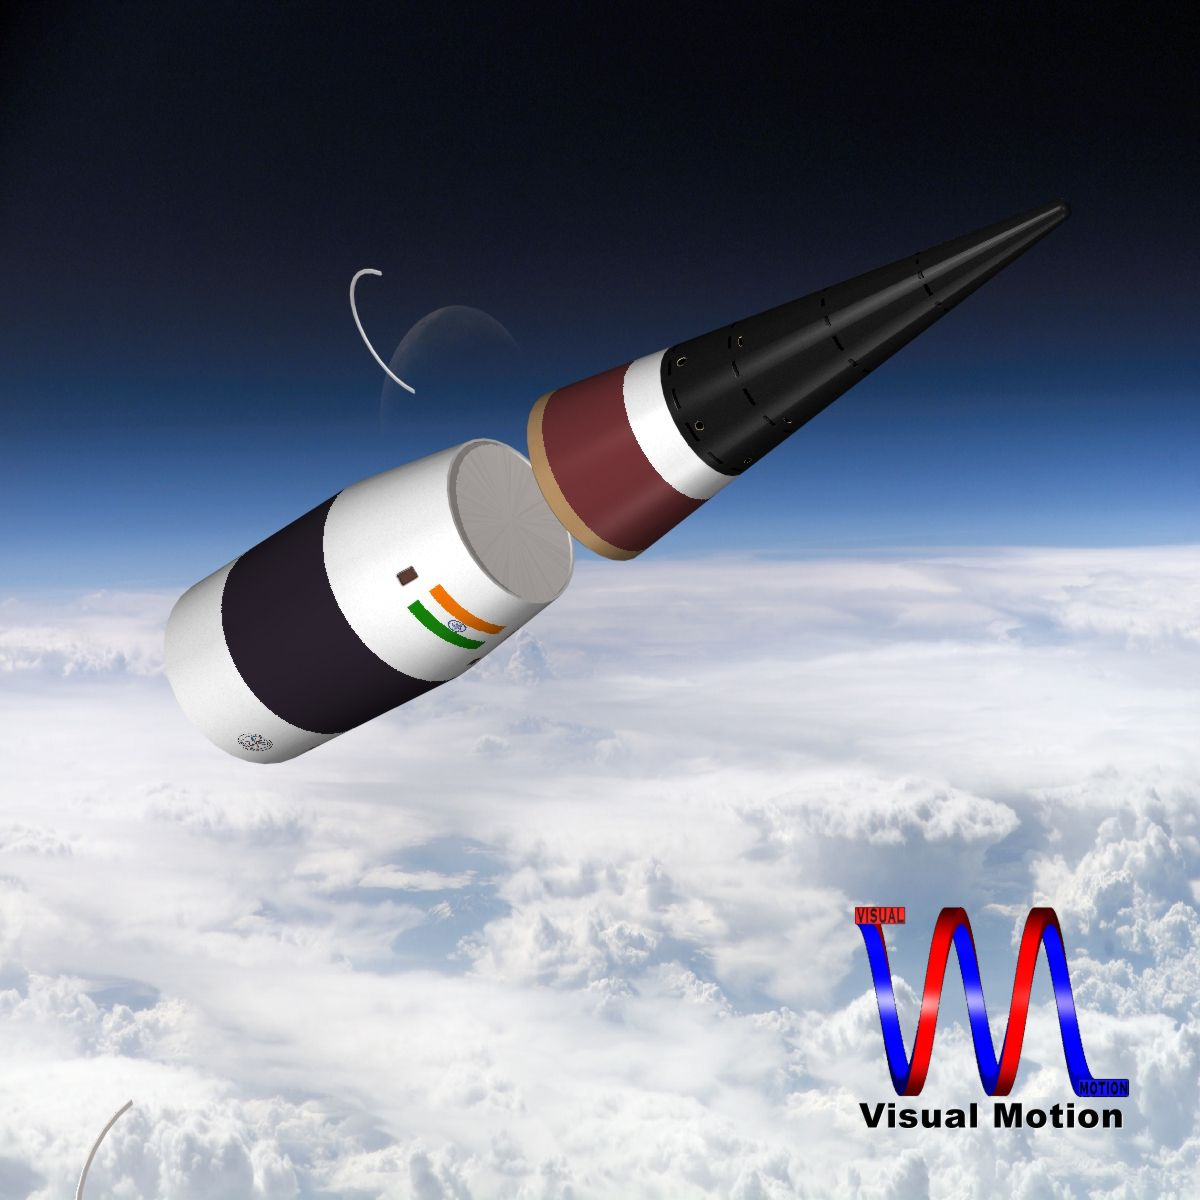 drdo agni-5-01 test missile 3d model 3ds dxf cob x other obj 136270